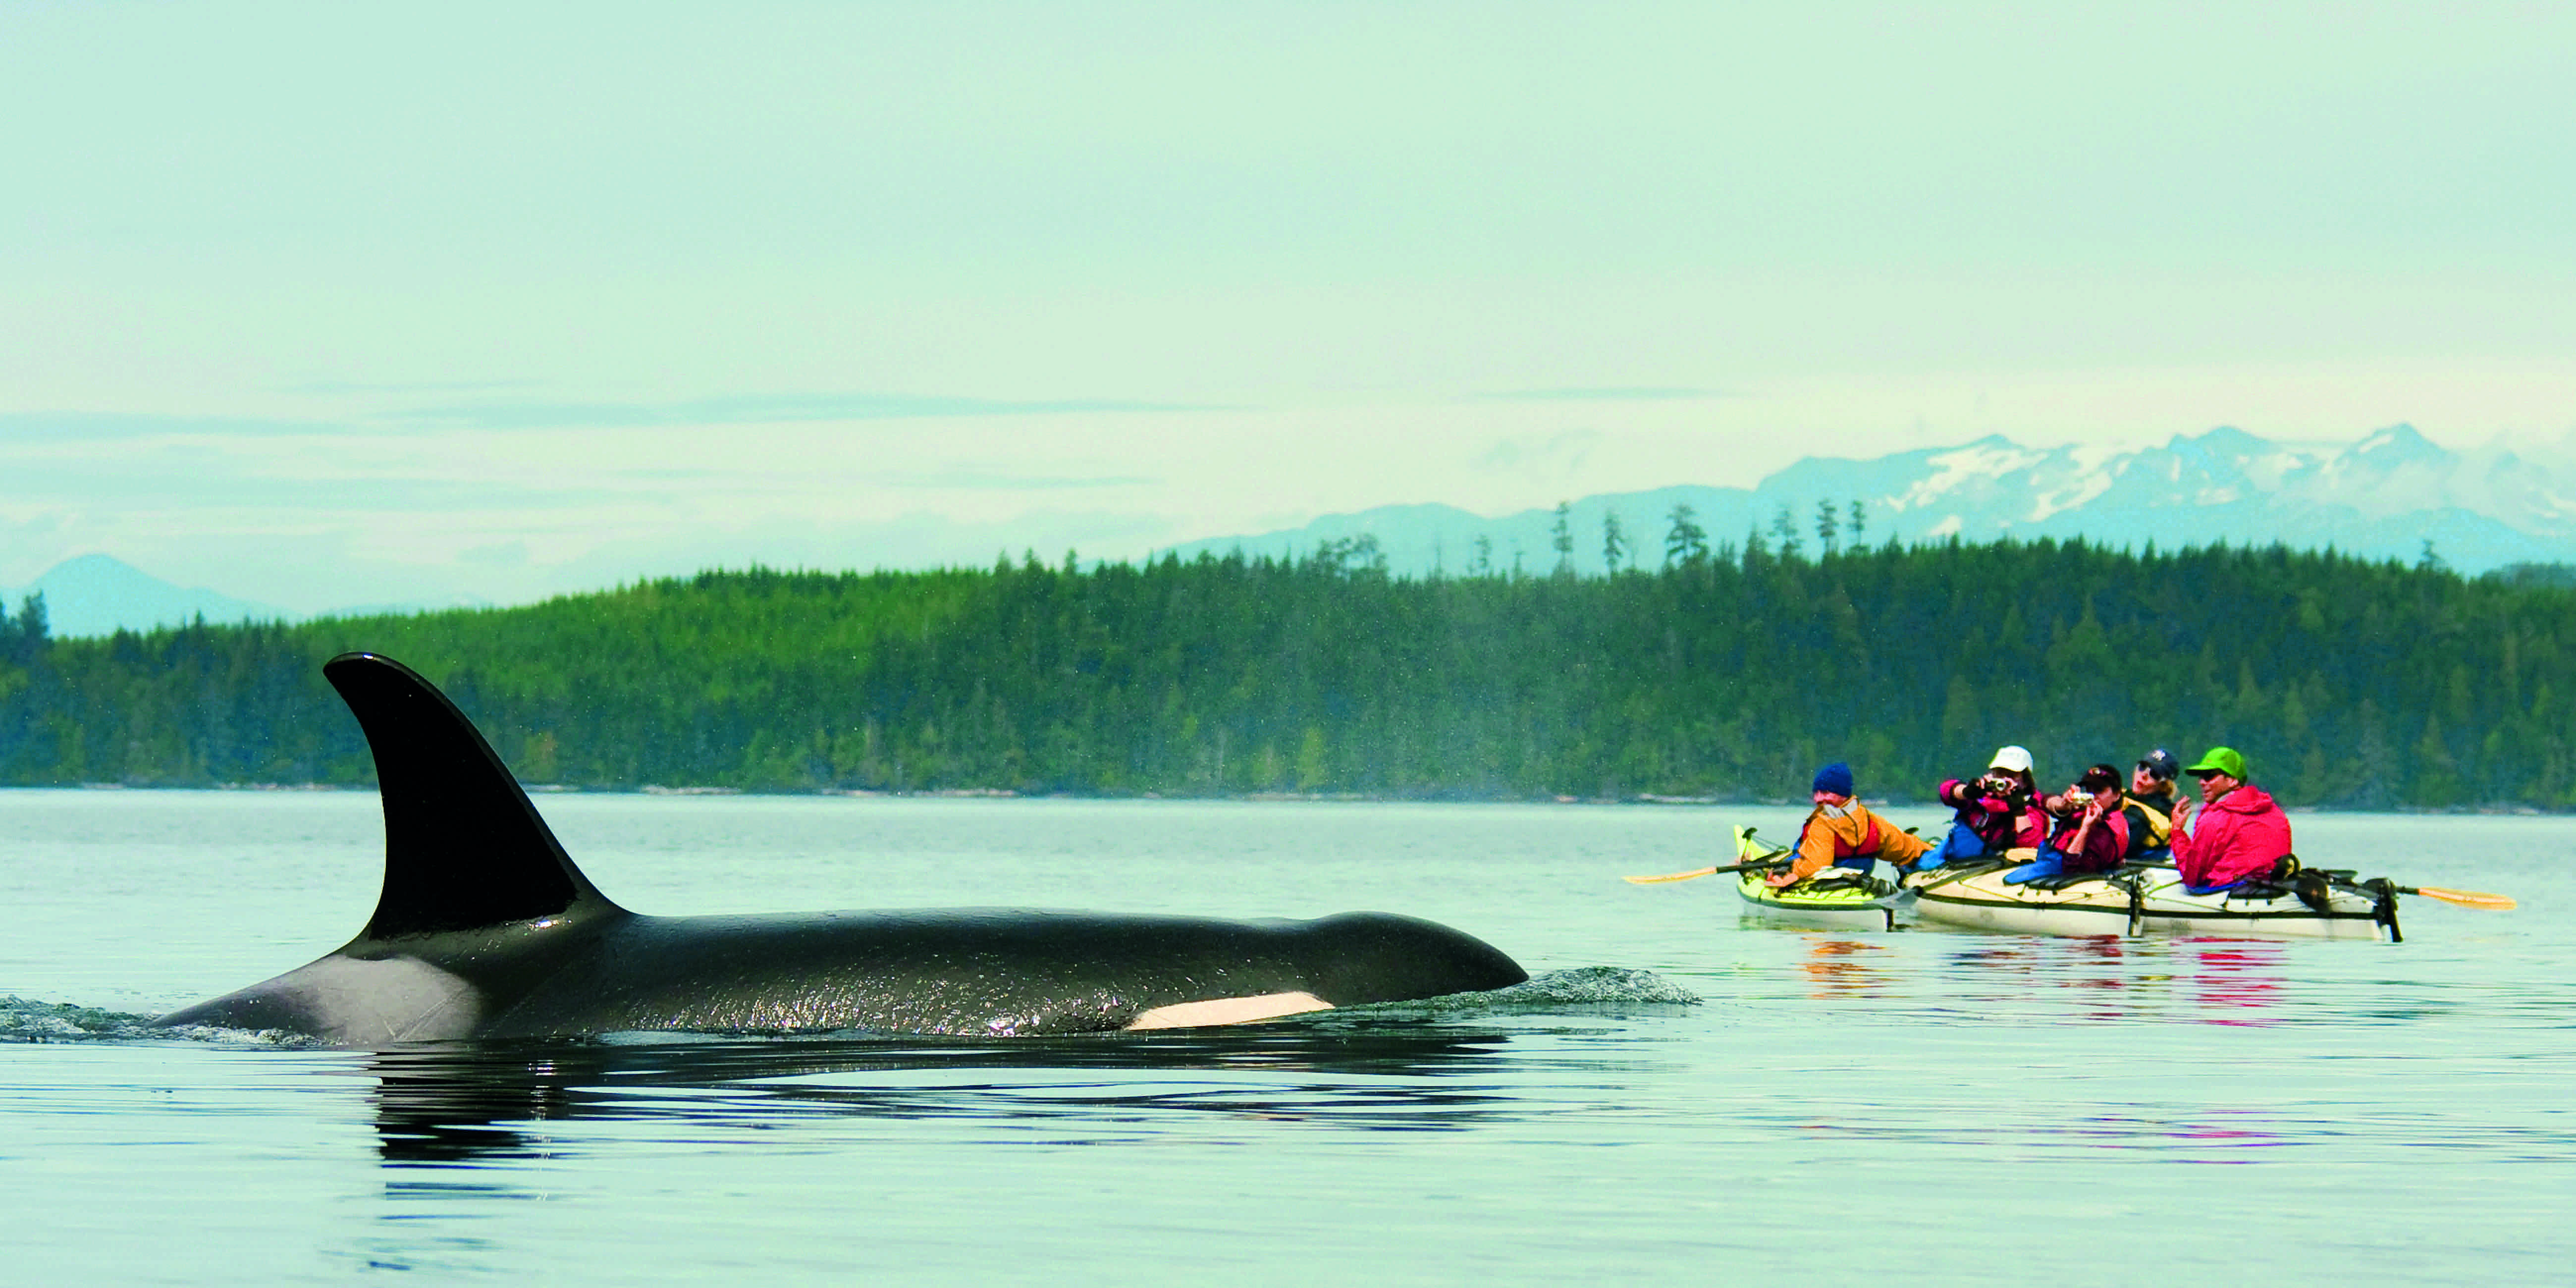 Orca Whale (killer whale) with kayakers rafted up on Johnstone Strait, Vancouver Island, British Columbia, Canada